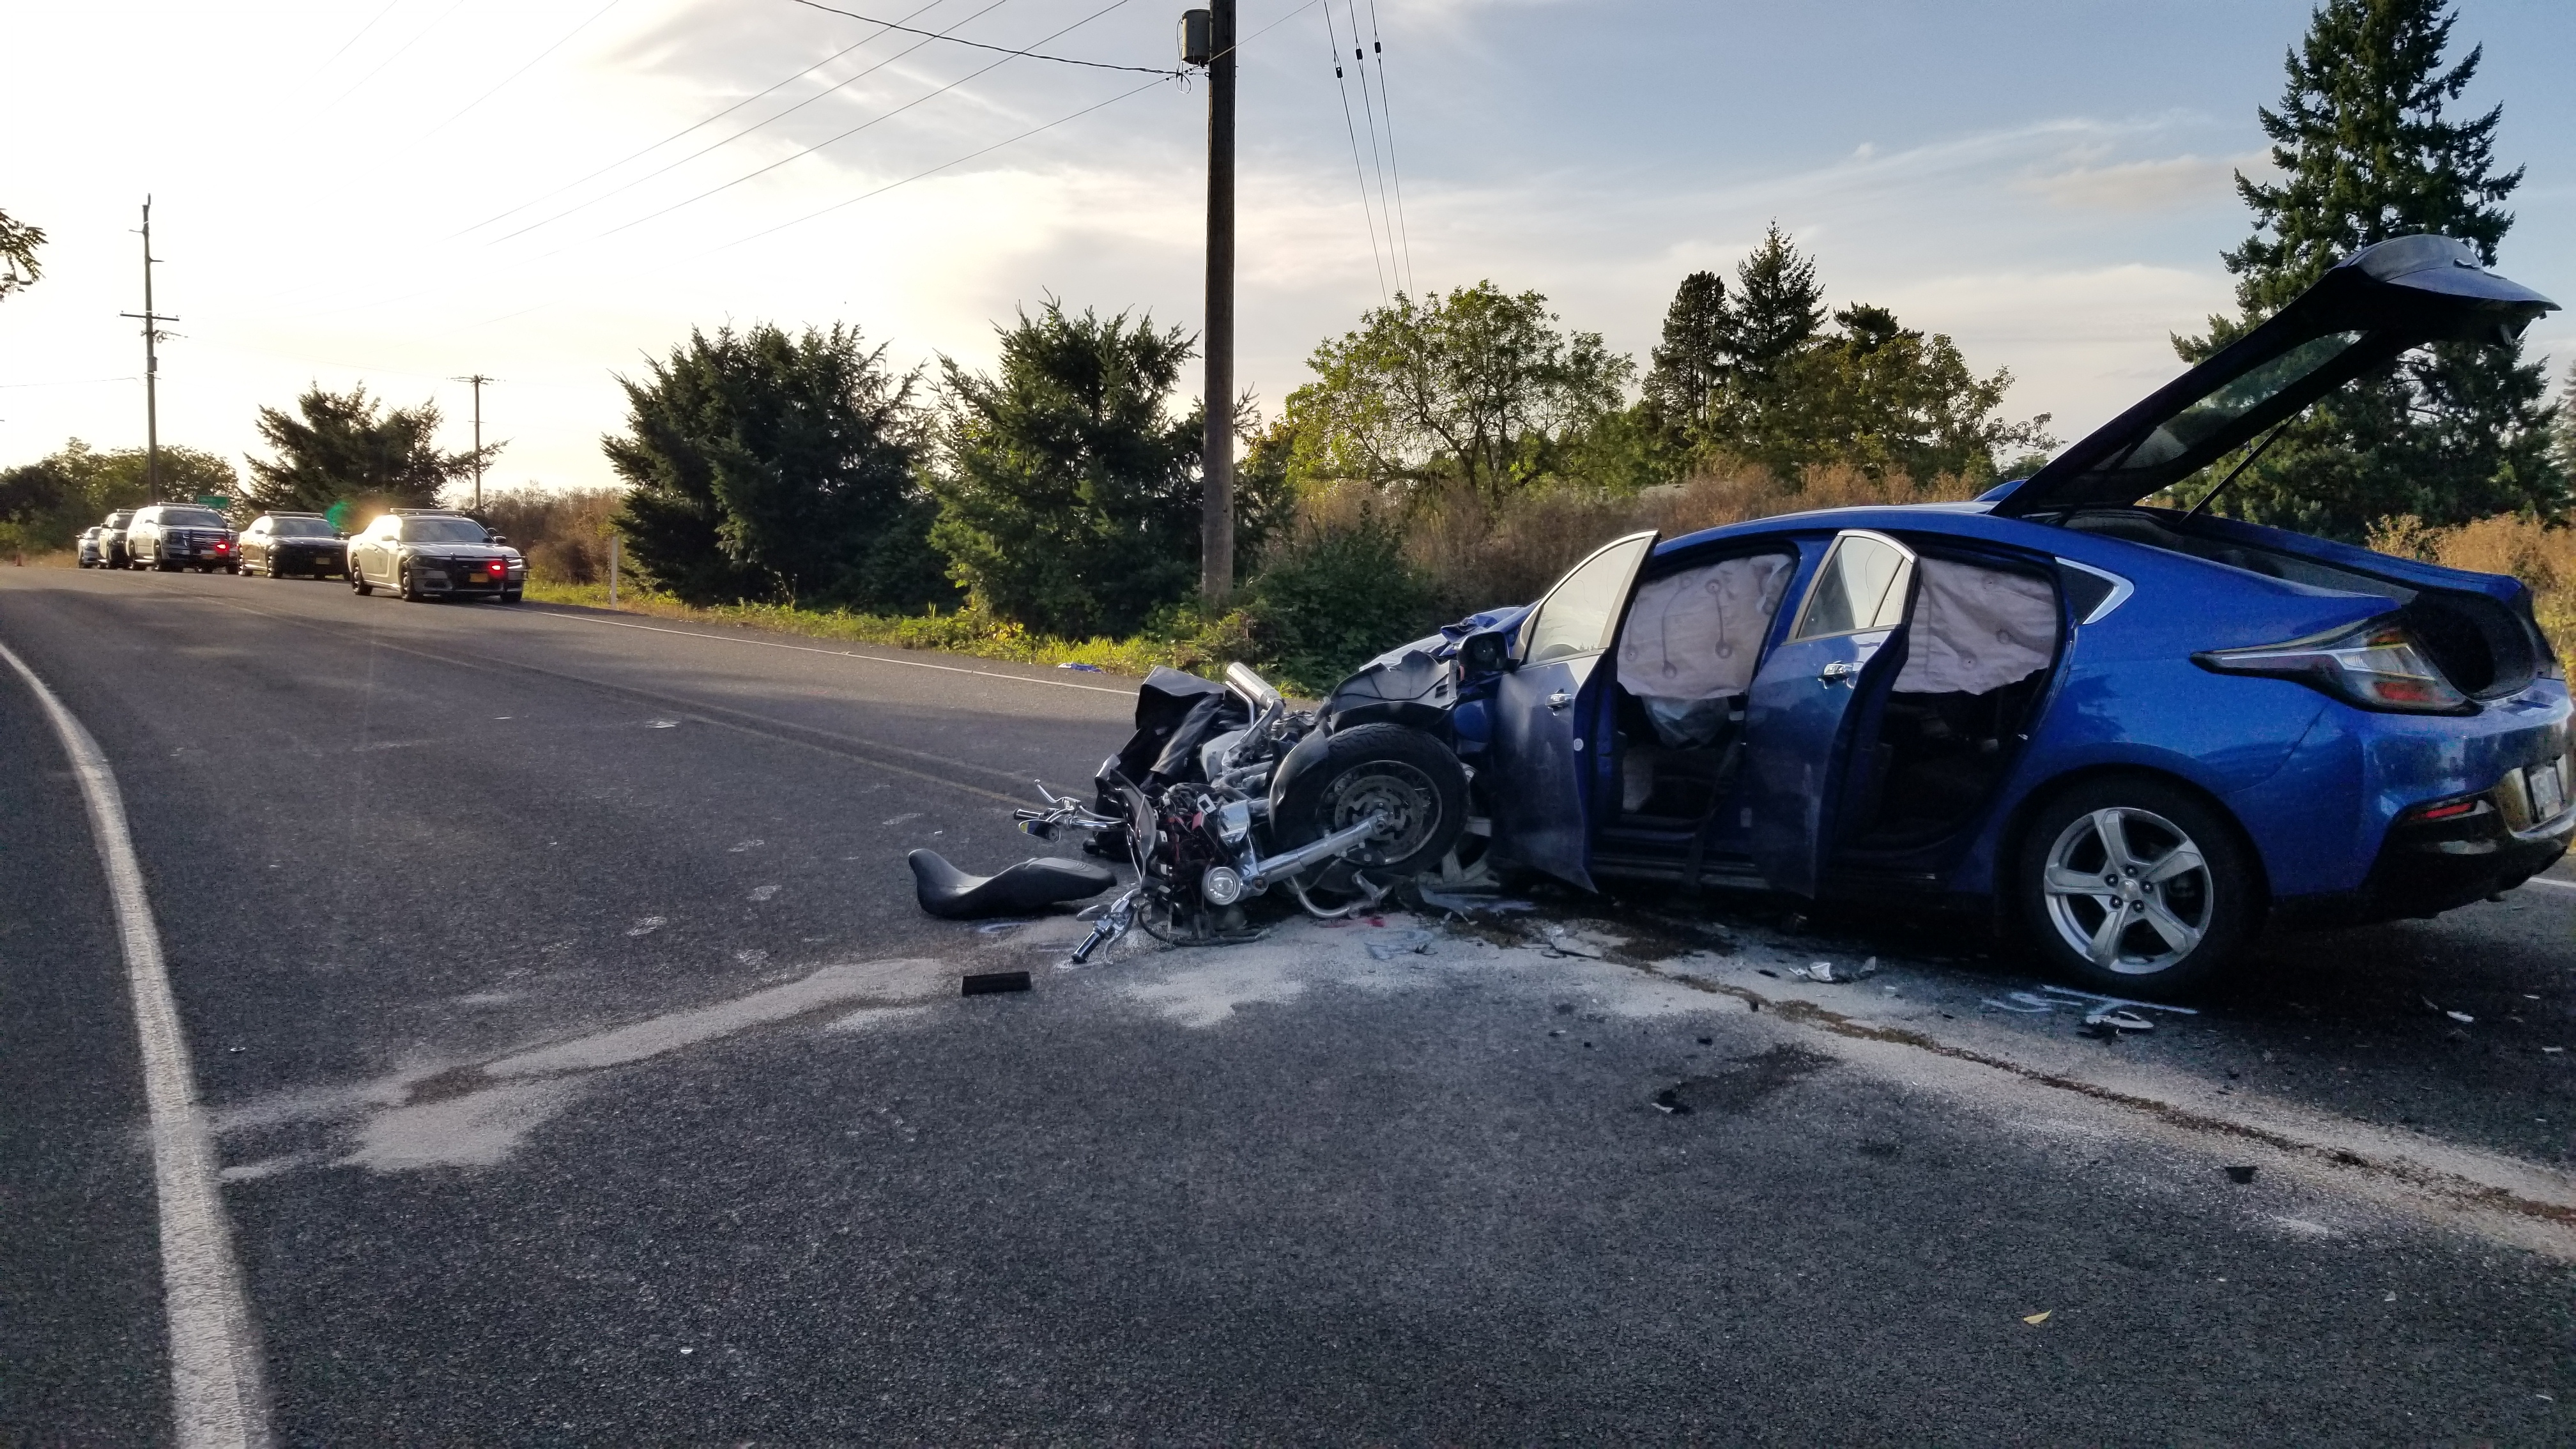 Oregon motorcyclist killed in head-on crash while trying to pass car, police say